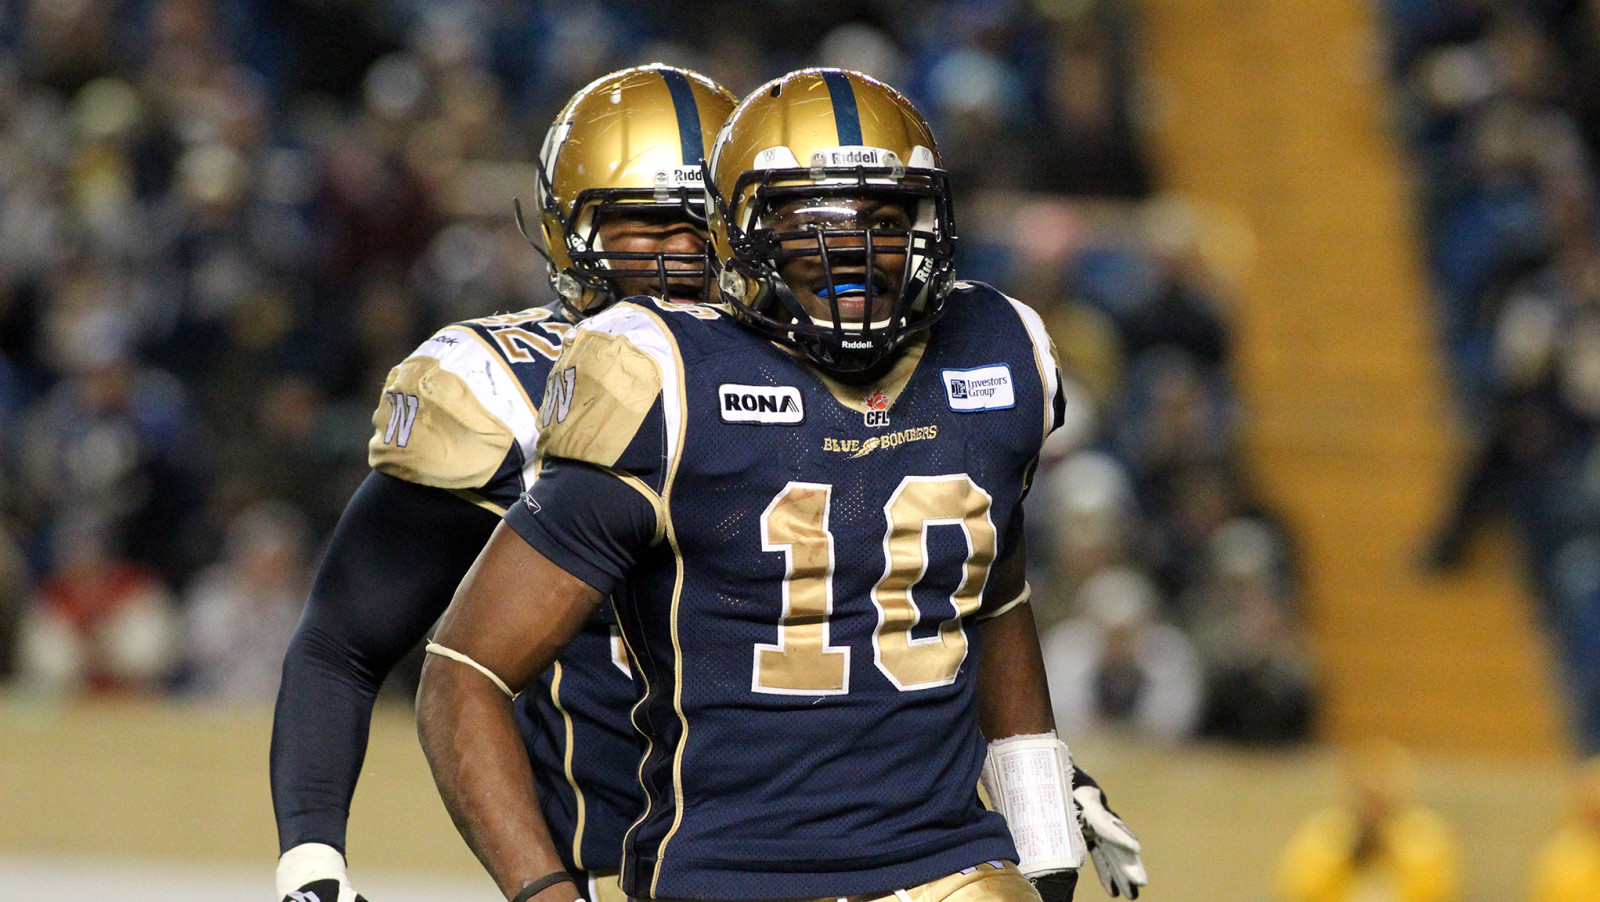 Top Ten – the CFL number one draft picks 2010-19